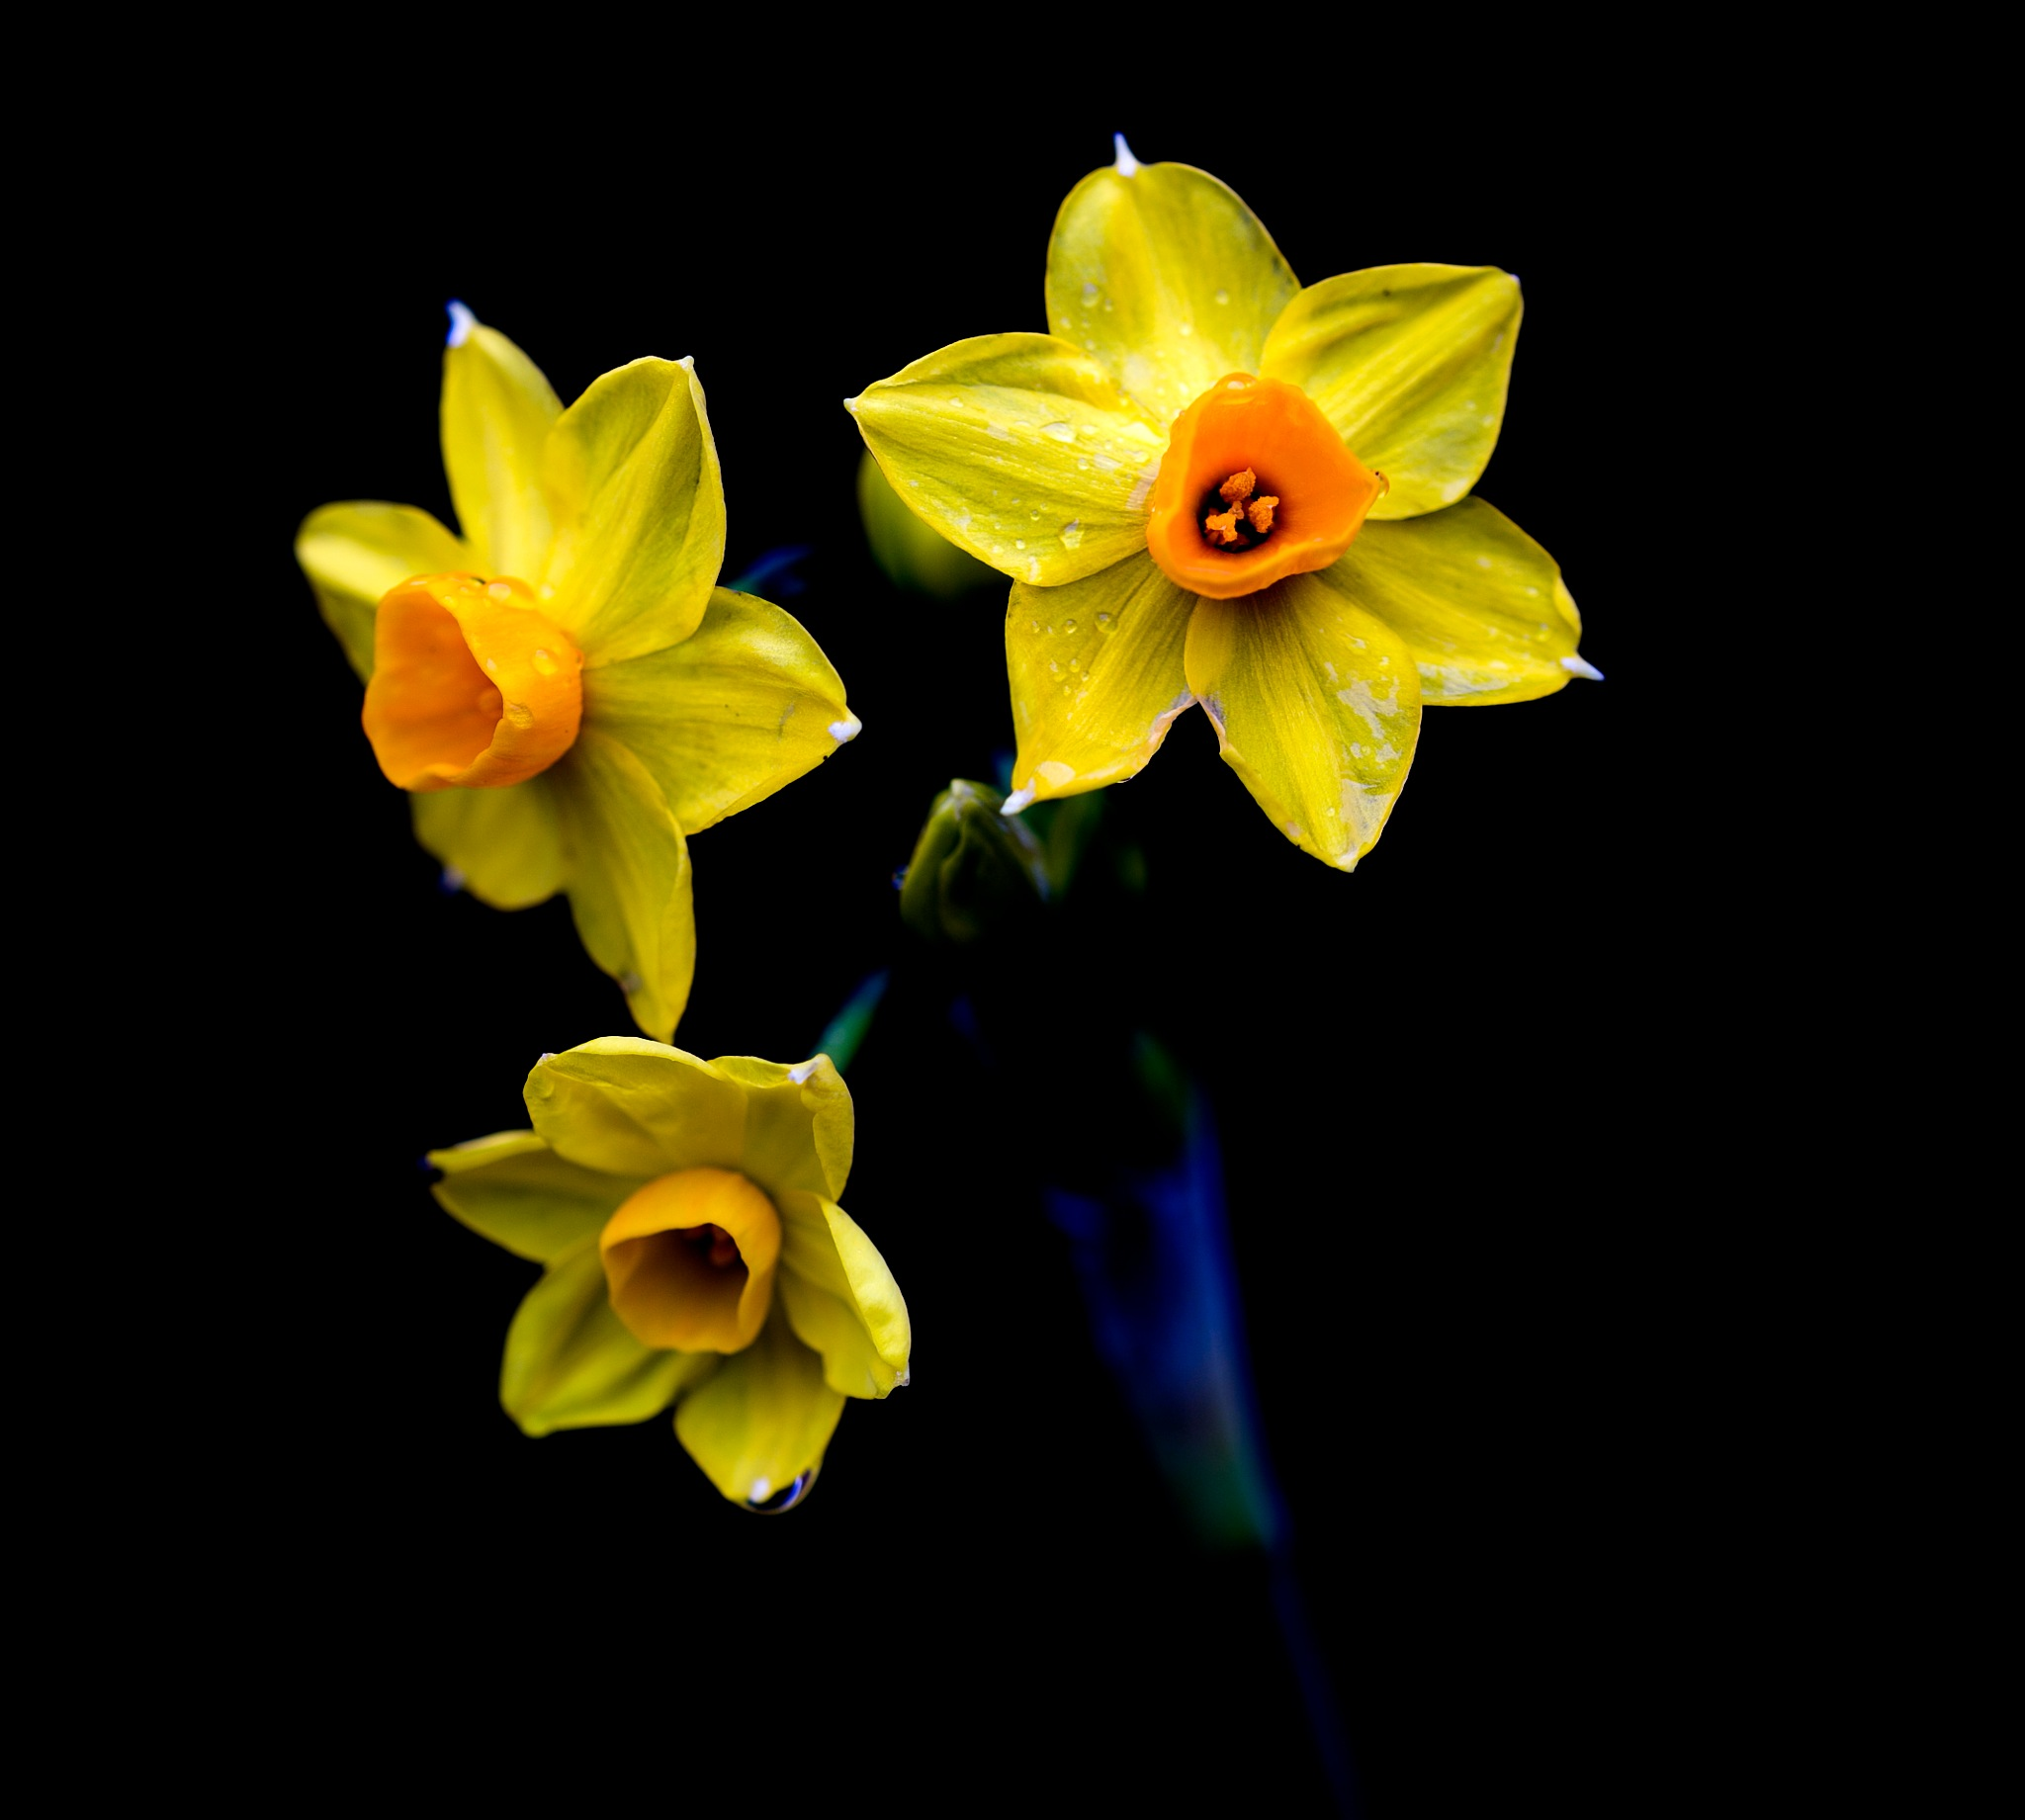 First Daffodil this year by Albert Houston